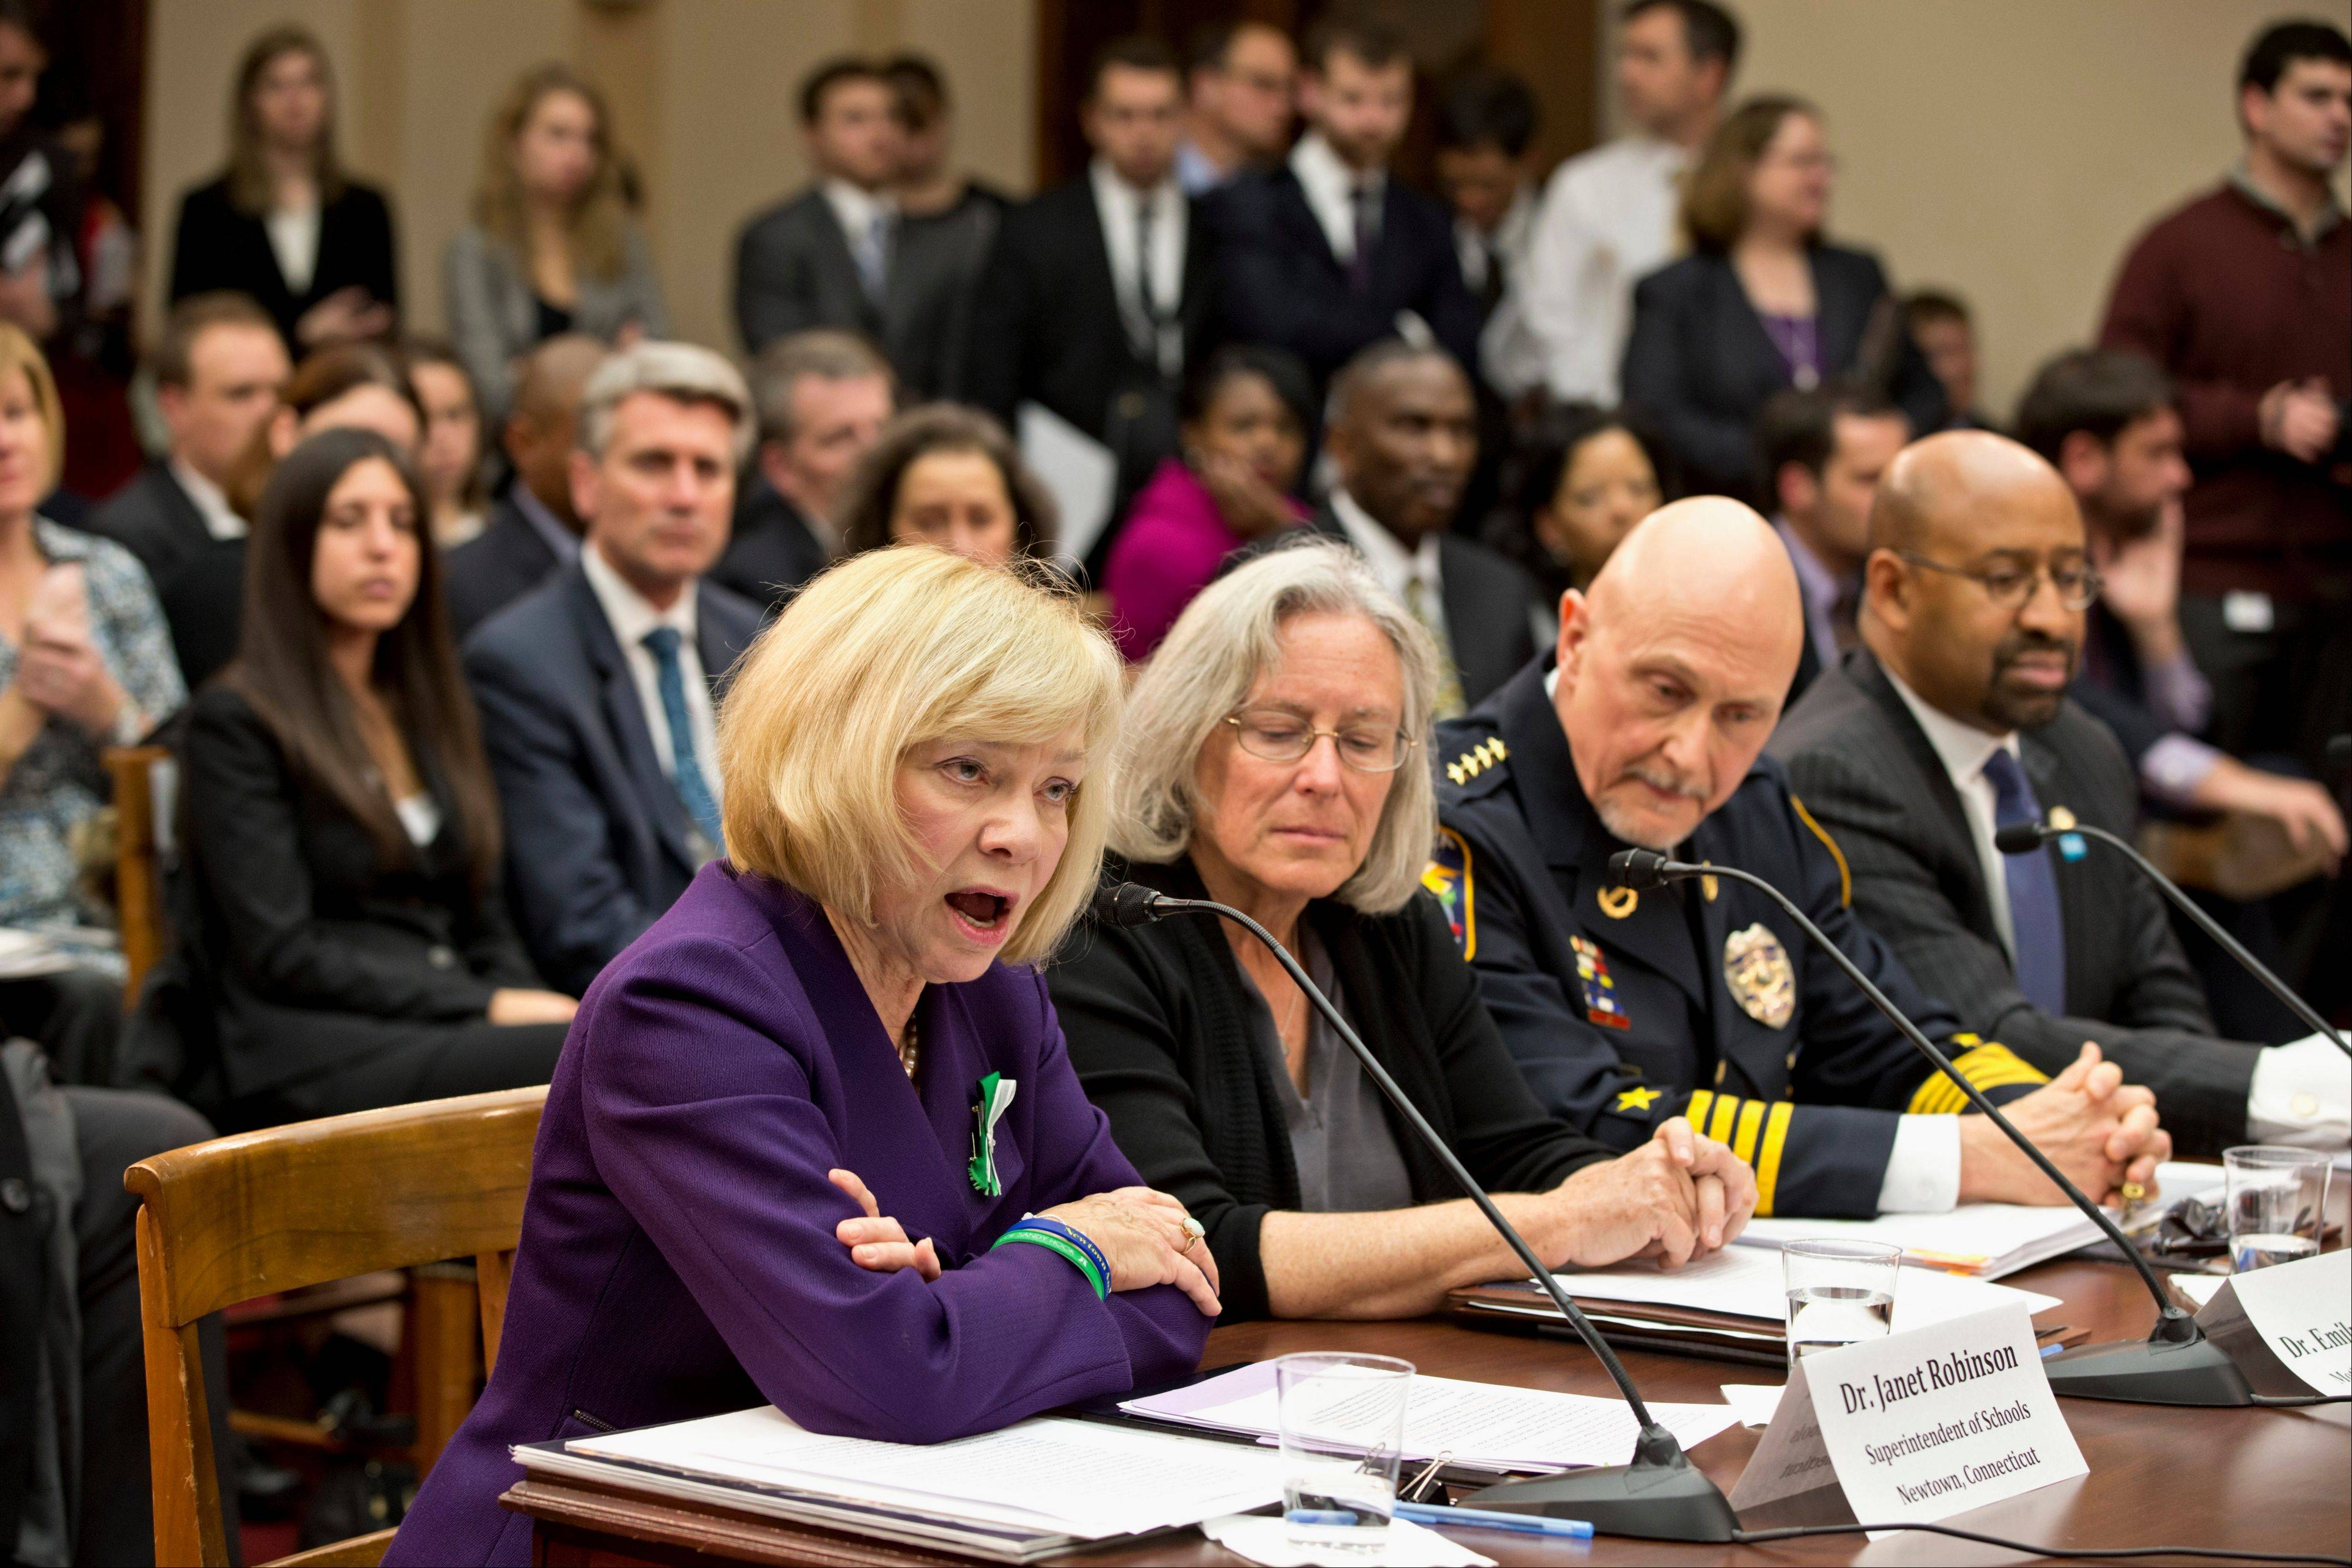 Newtown, Conn. School Superintendent Janet Robinson, left, testifies Wednesday on Capitol Hill in Washington before a special hearing on gun violence.